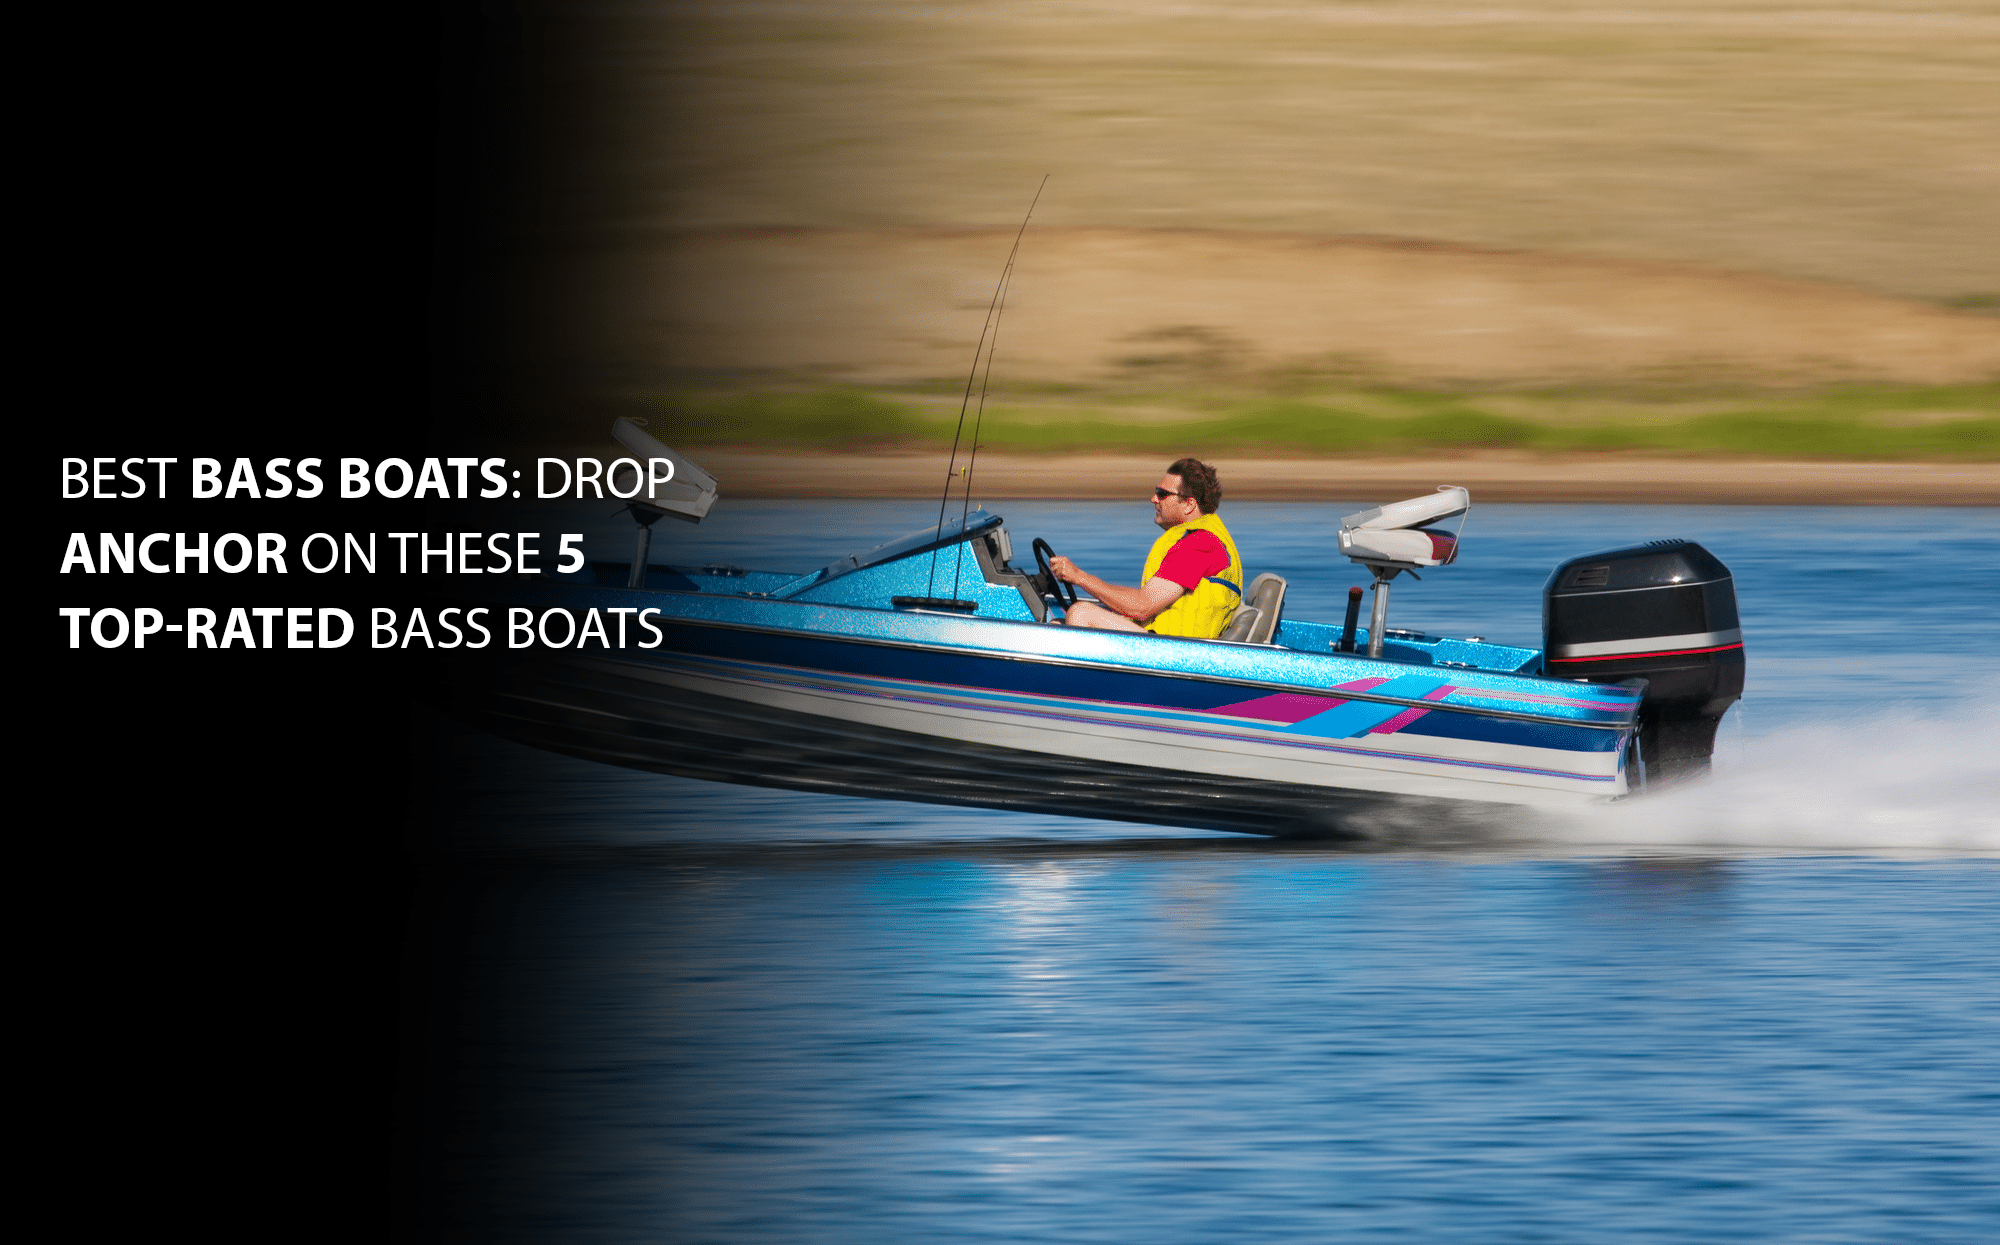 Best Bass Boats: Drop Anchor on these 5 Top-Rated Bass Boats